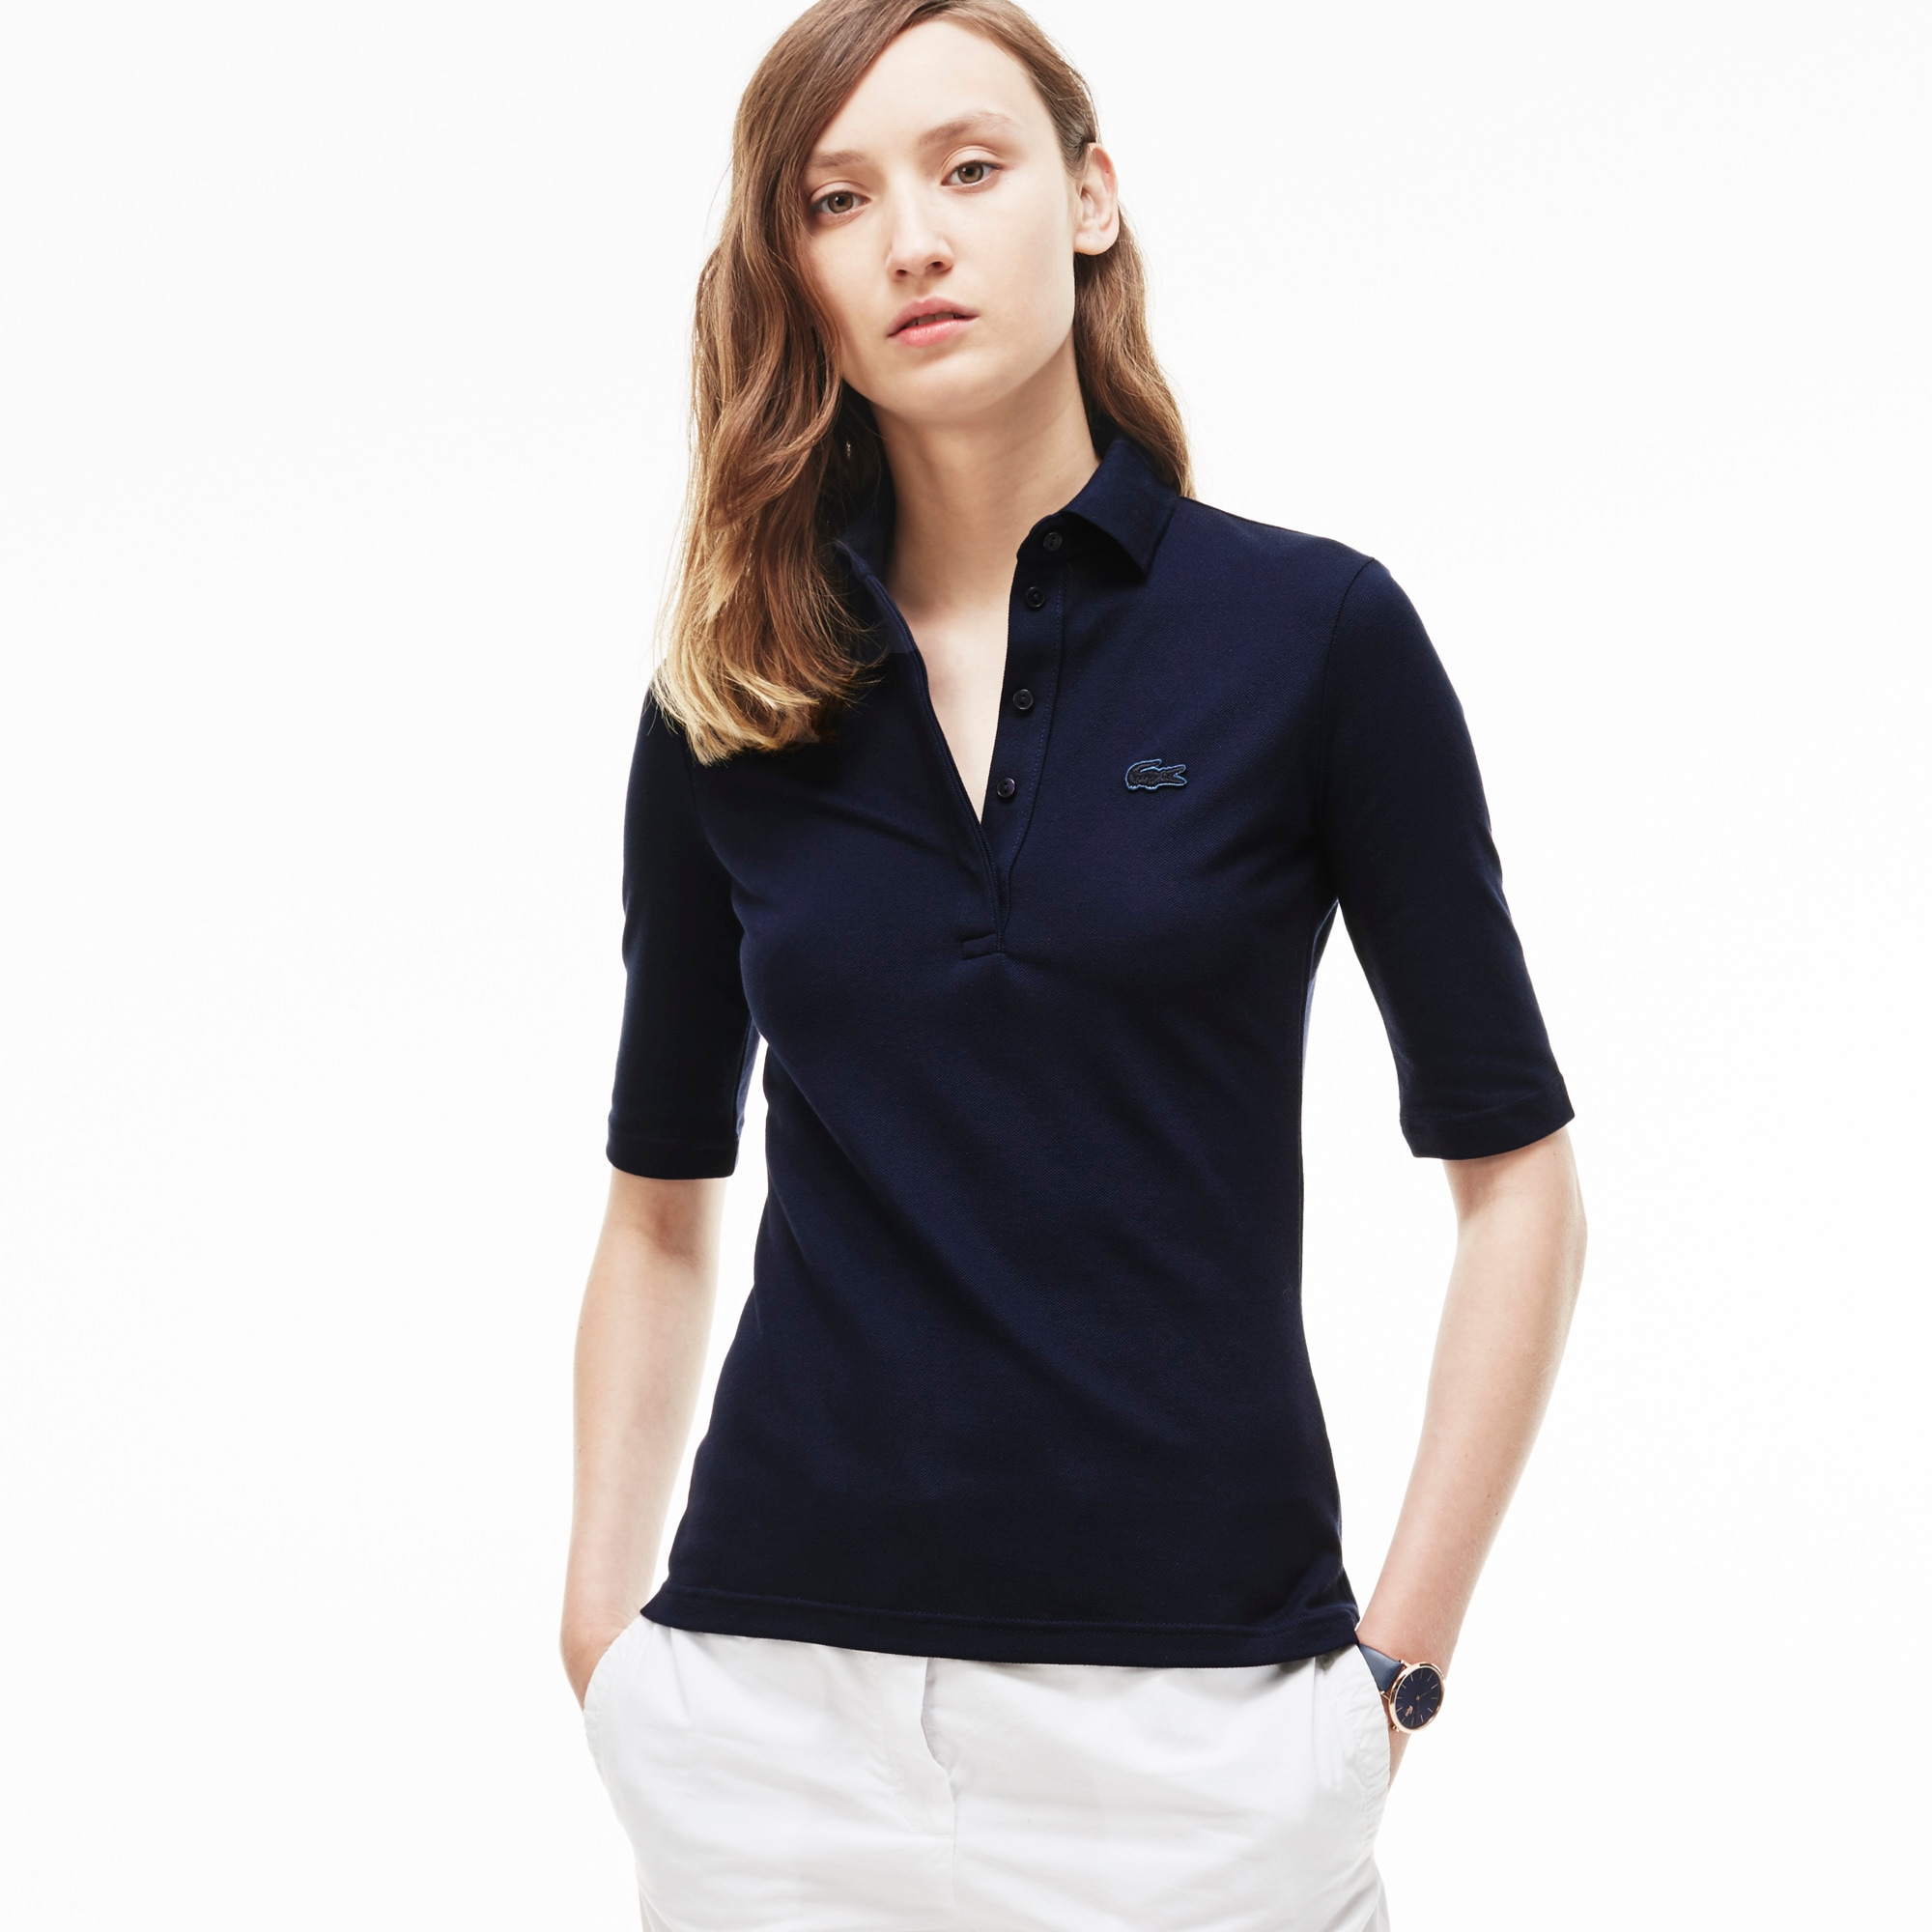 Women's Slim Fit Half Sleeve Stretch Piqué Polo Shirt